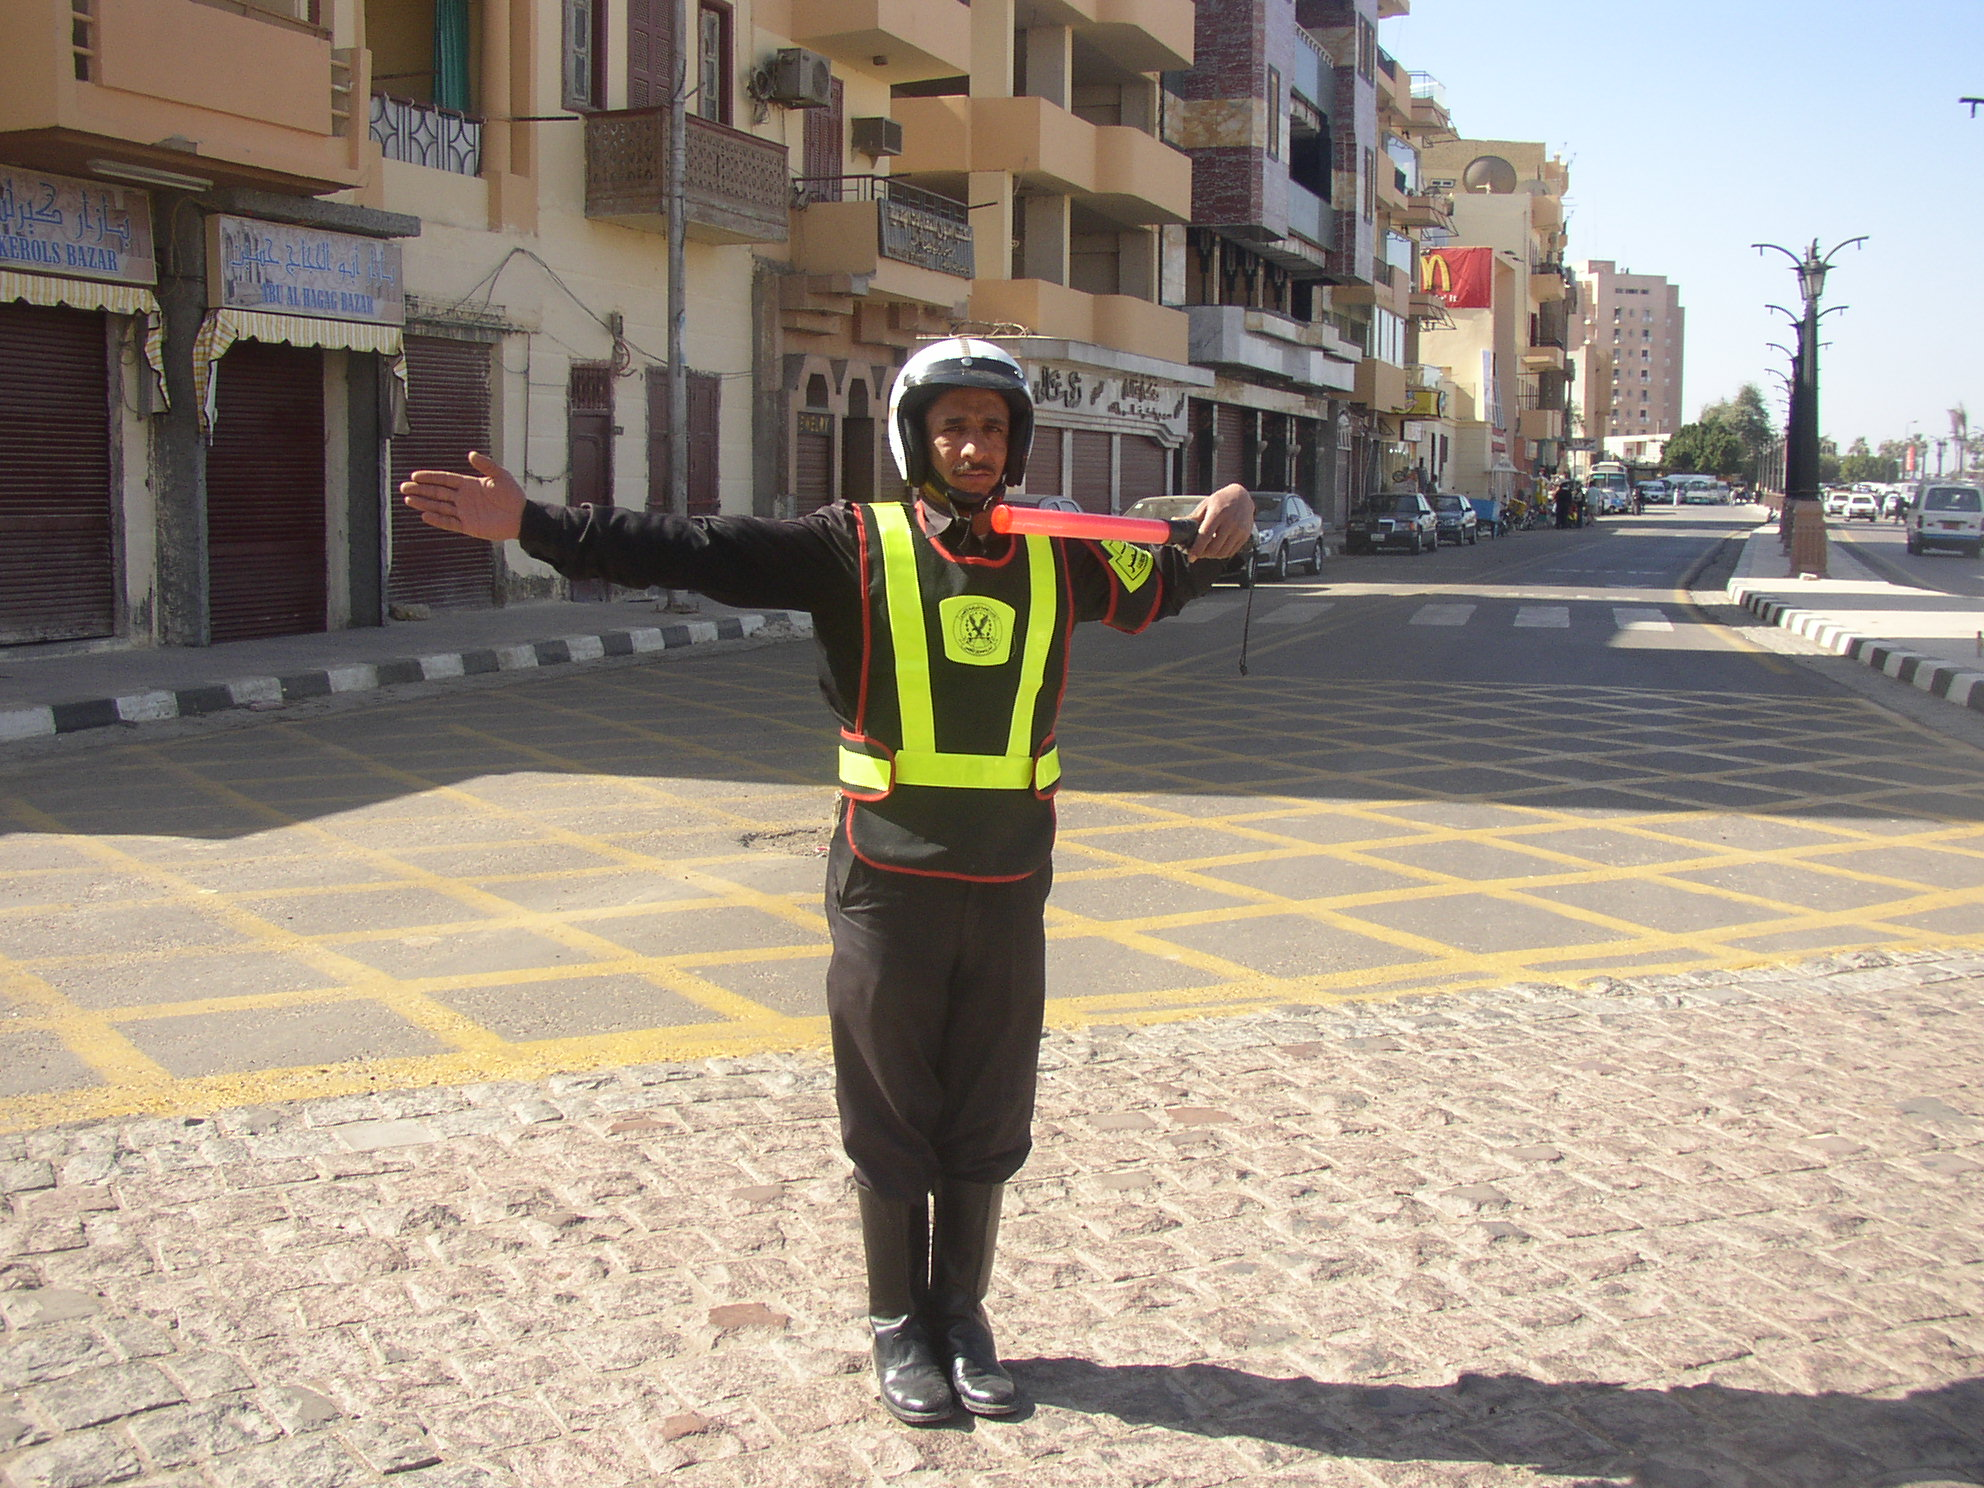 Traffic policeman in Egypt, Control, Egypt, Man, Police, HQ Photo